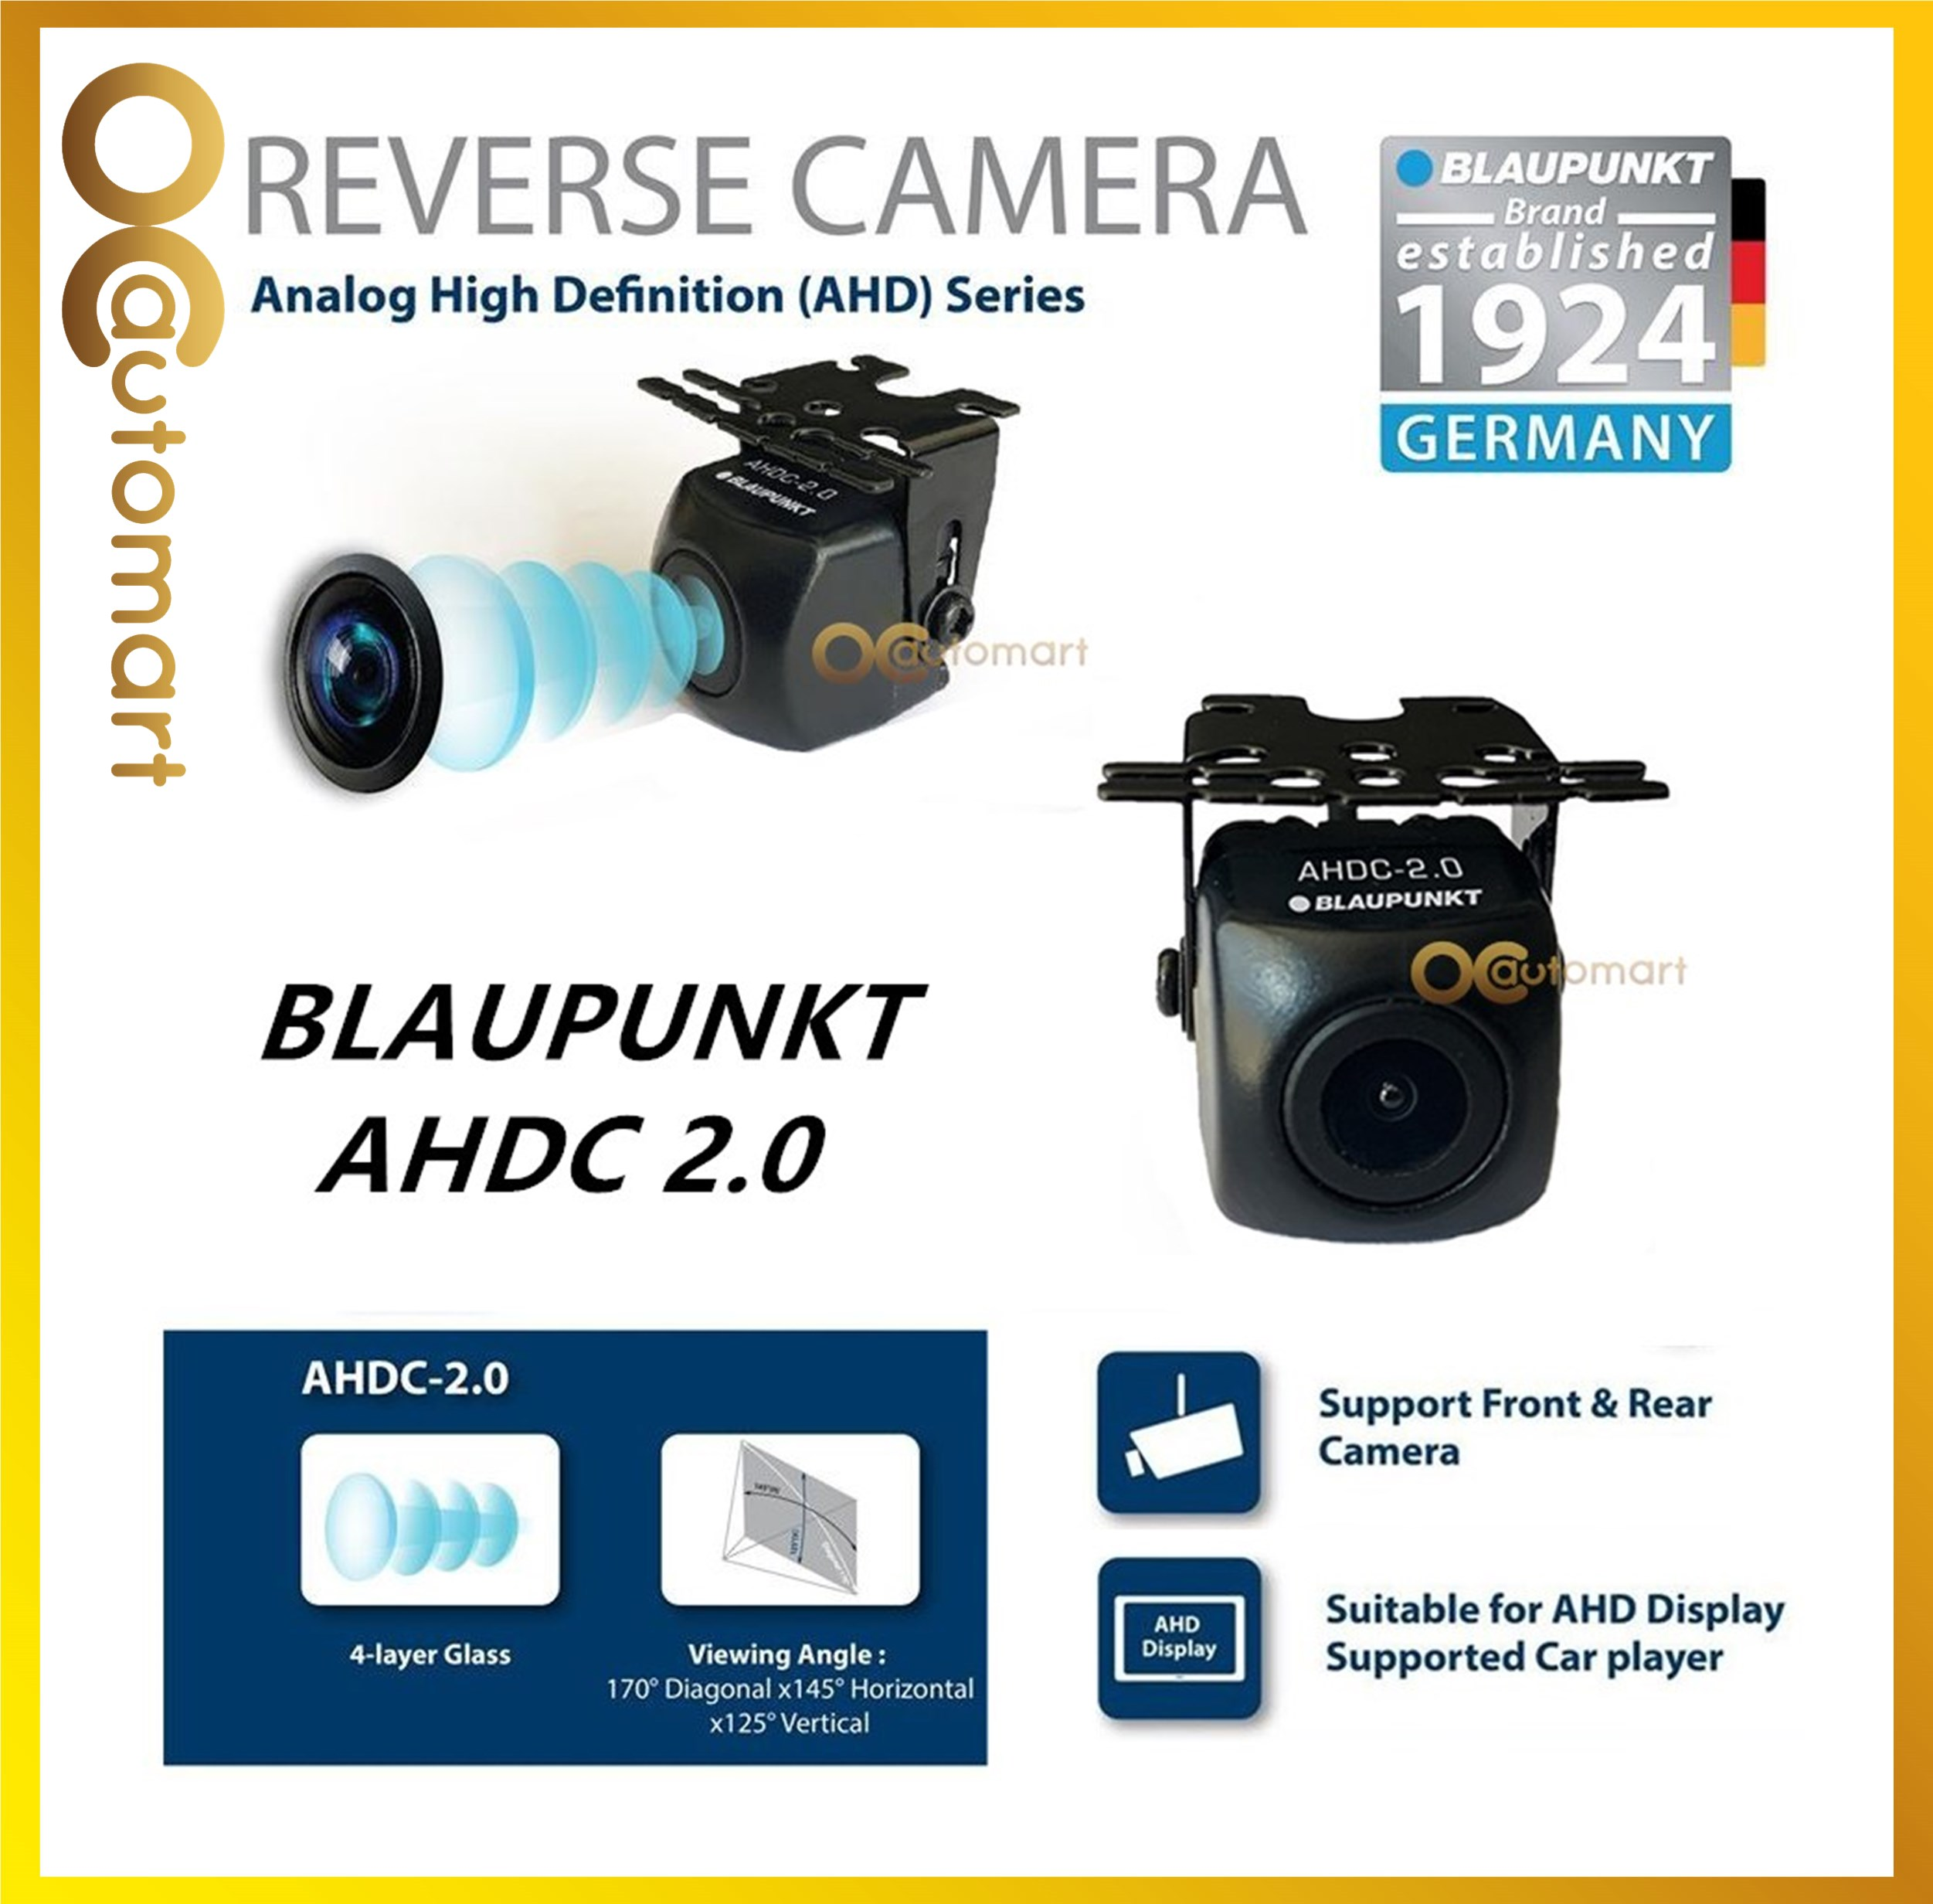 Blaupunkt 170° Ultra Wide Angle Car Reverse Camera AHDC 2.0 Rear Cam Suitable for AHD Display Supported Car Player